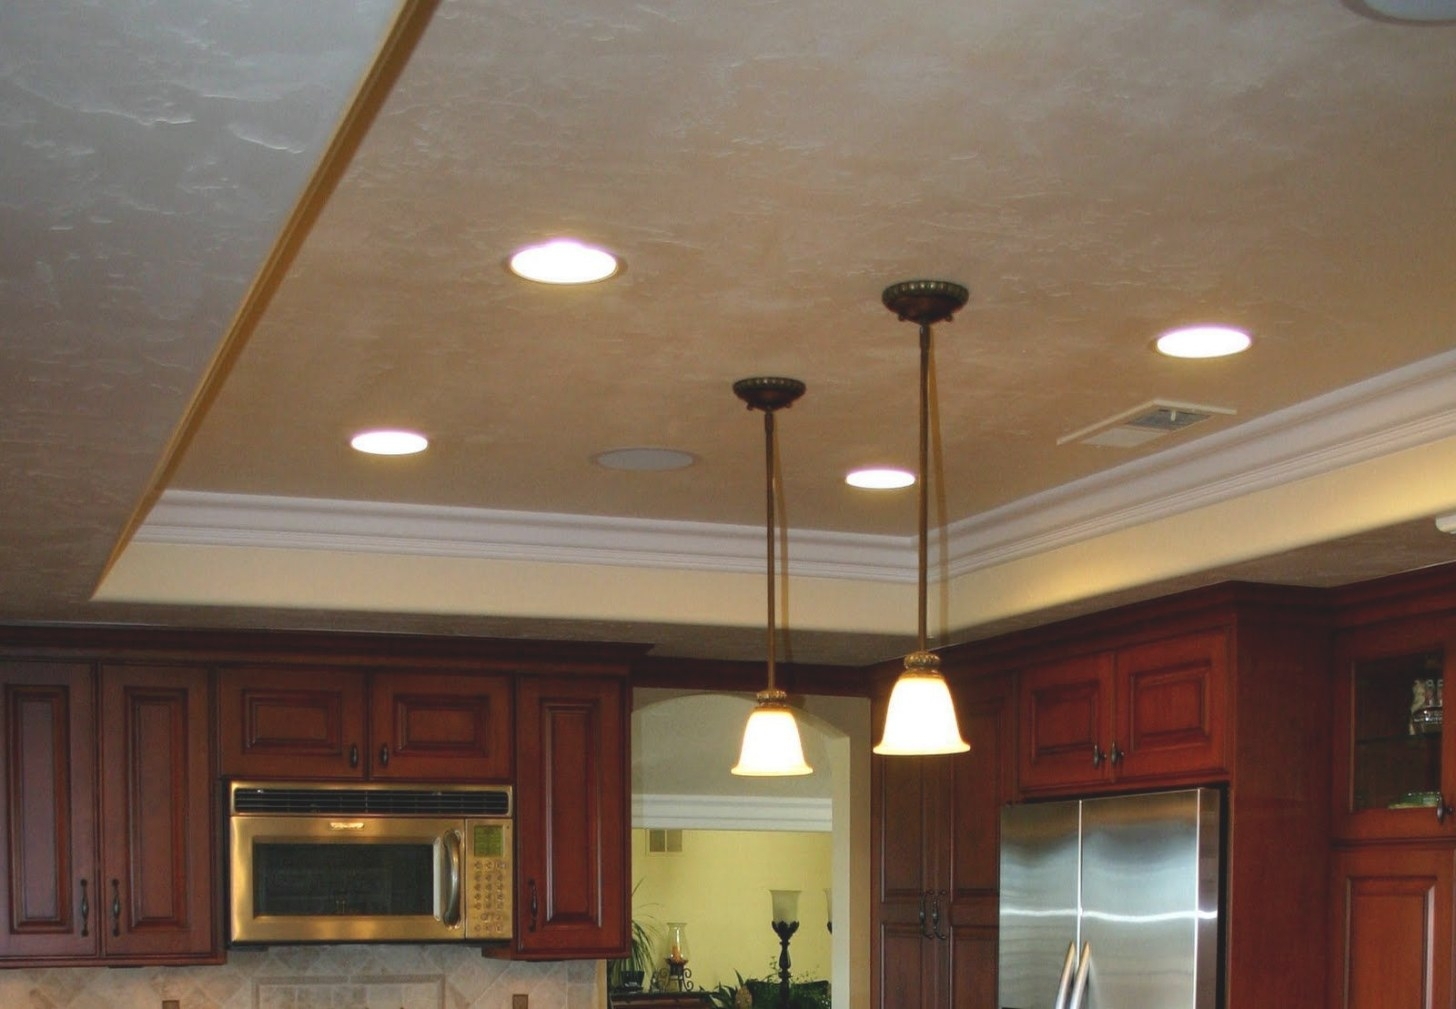 Home Decor: Bonnies Old World Kitchen Remodel | Kitchen intended for Drop Ceilings In Homes